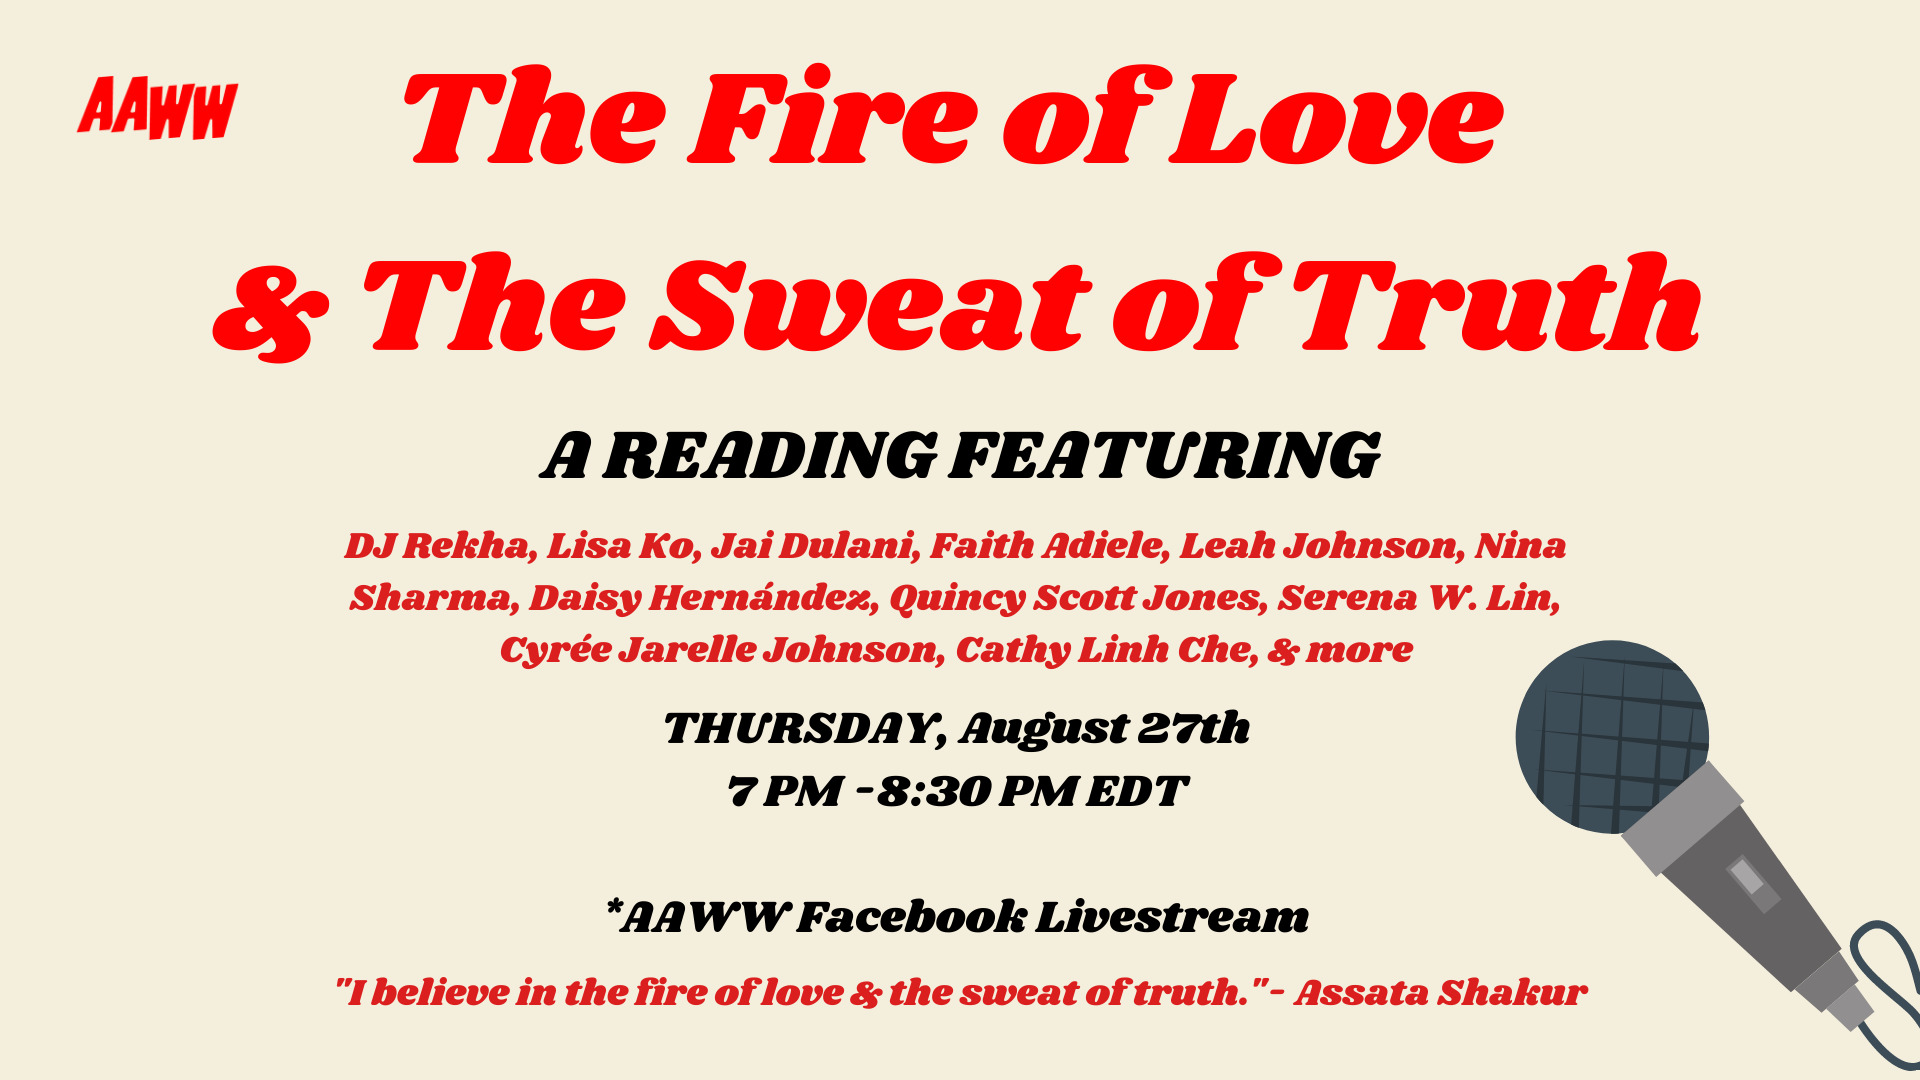 The Fire of Love & The Sweat of Truth: A Reading